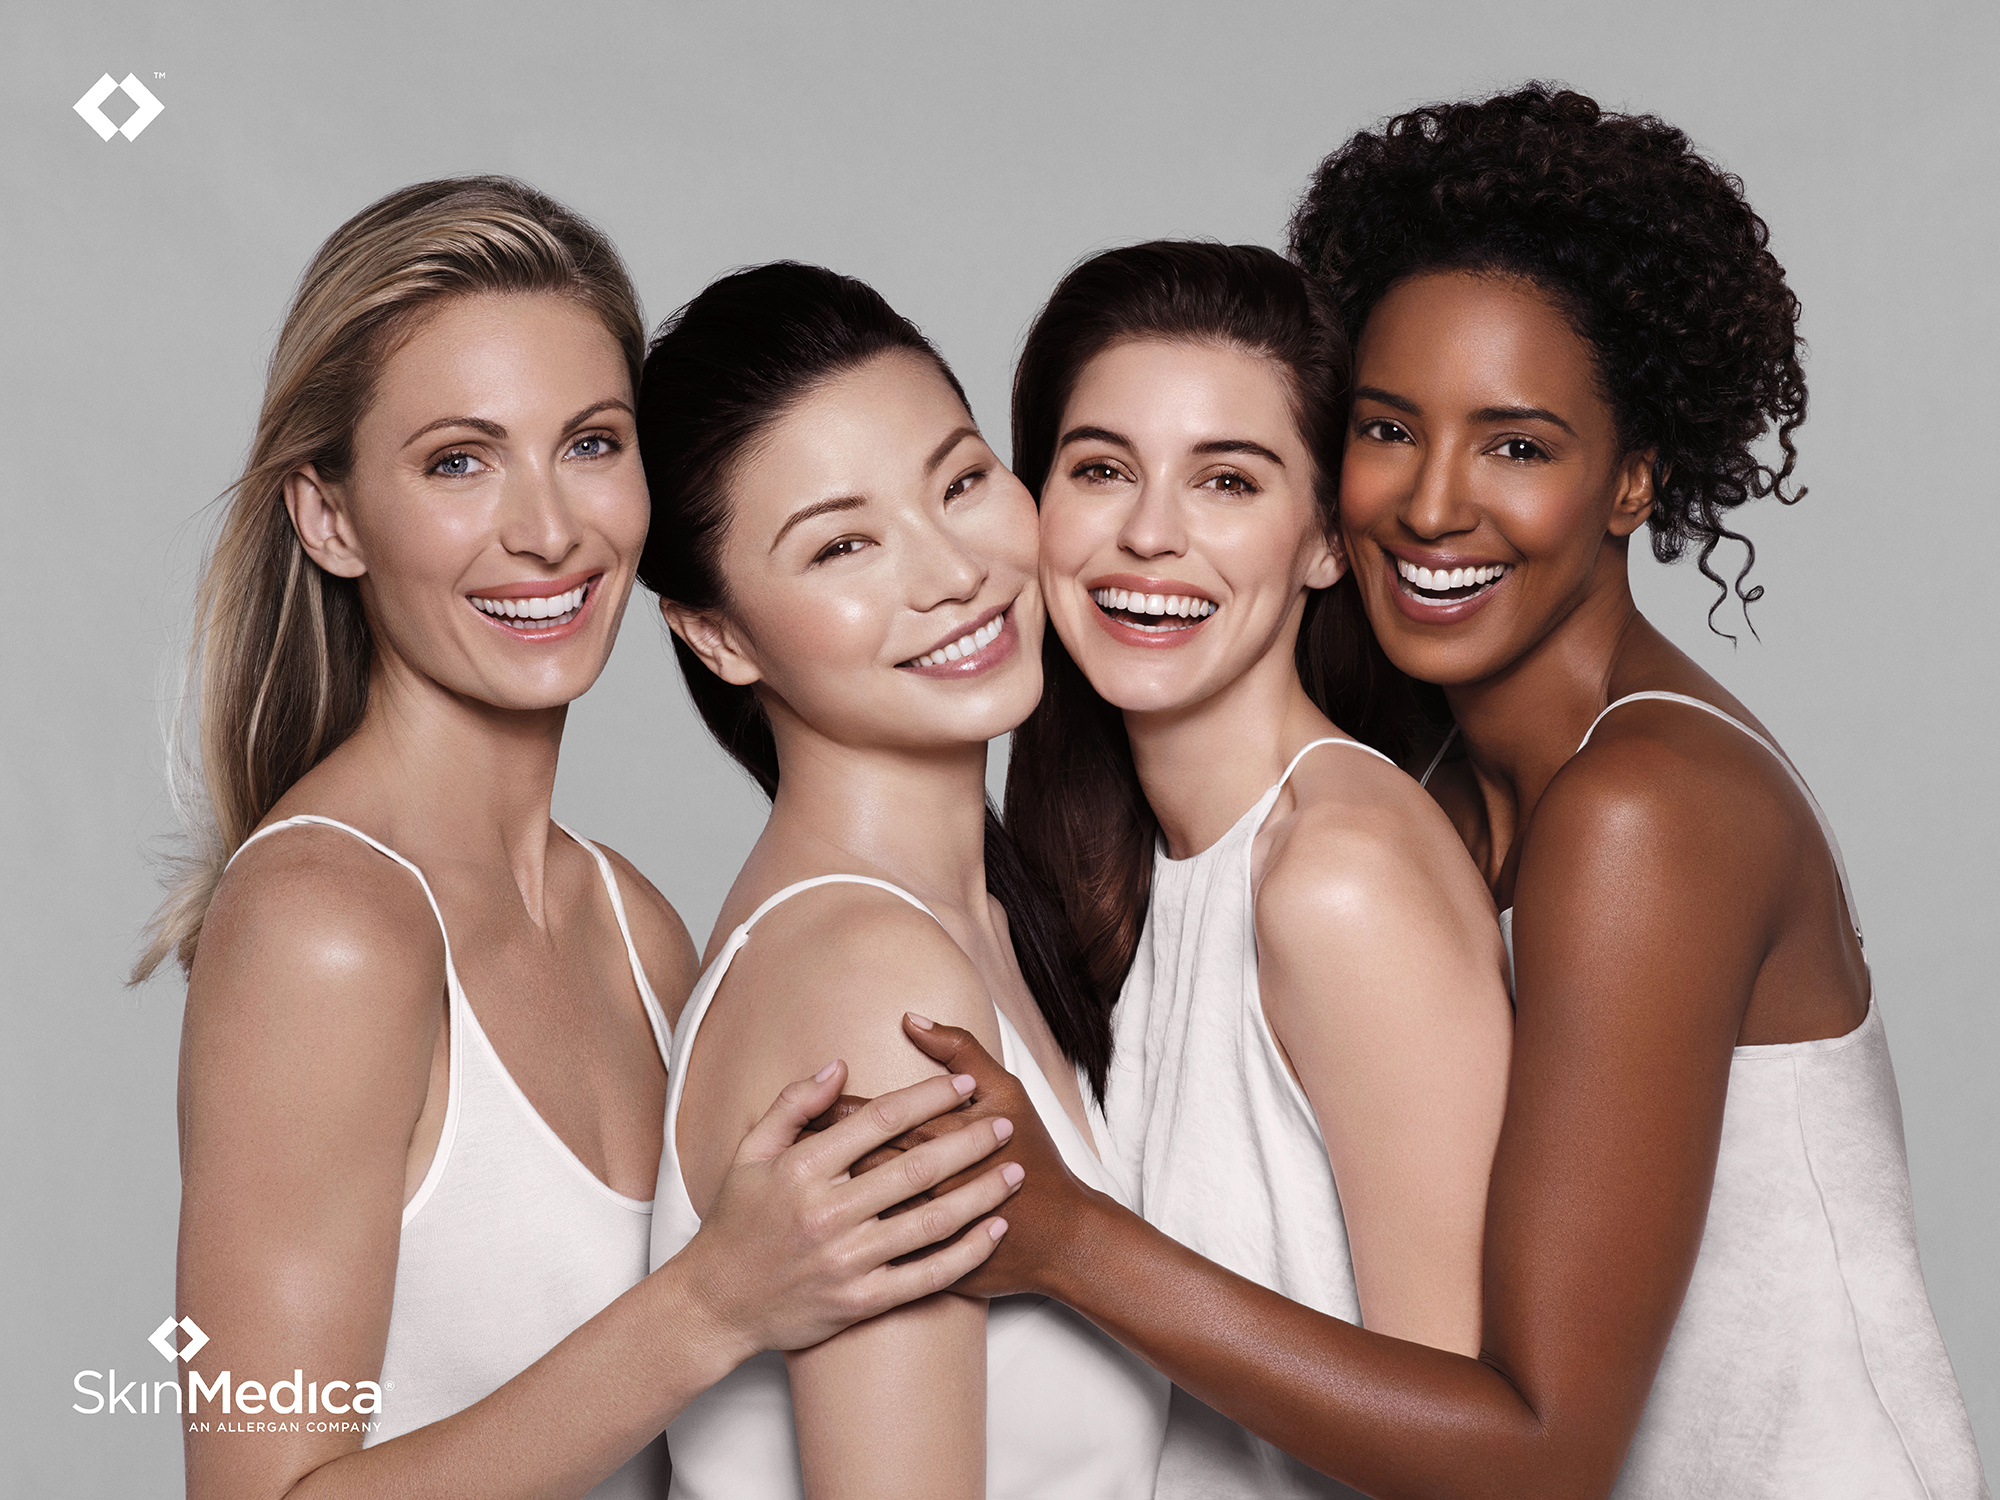 models of different skin colors with smooth and clear skin